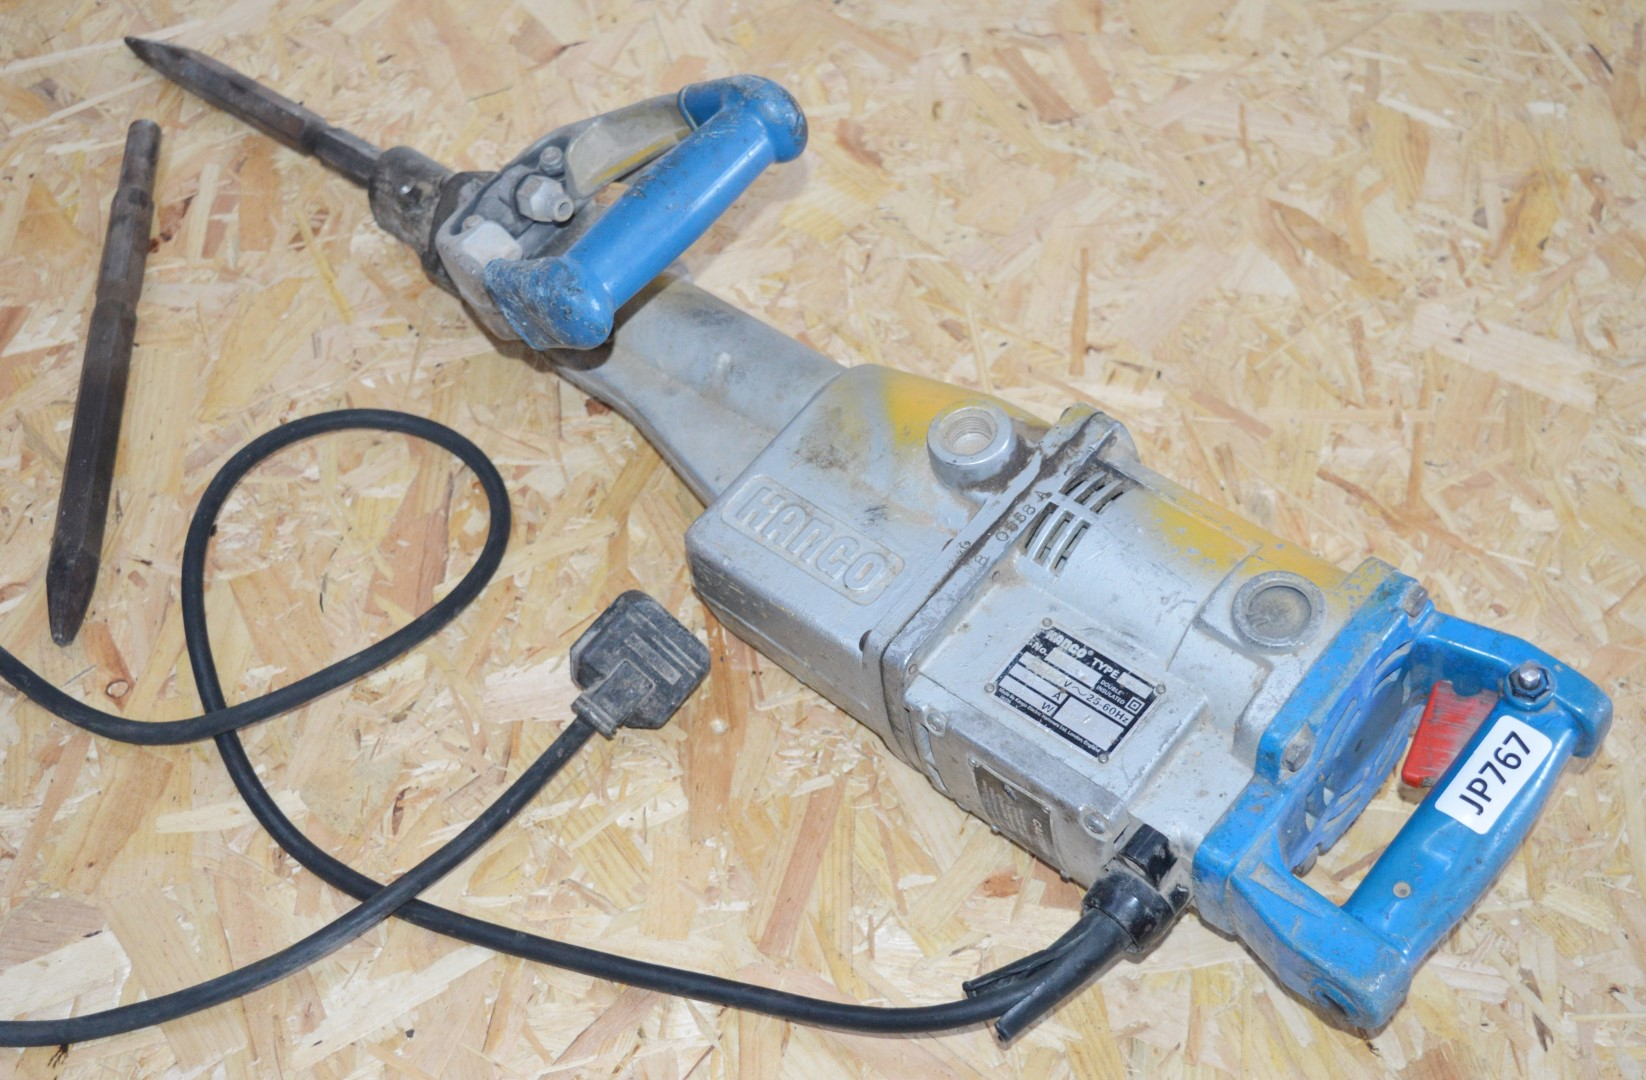 Lot 407 - 1 x Kango 950 Concrete Breaker / Hammer Drill With Two Drill Bits